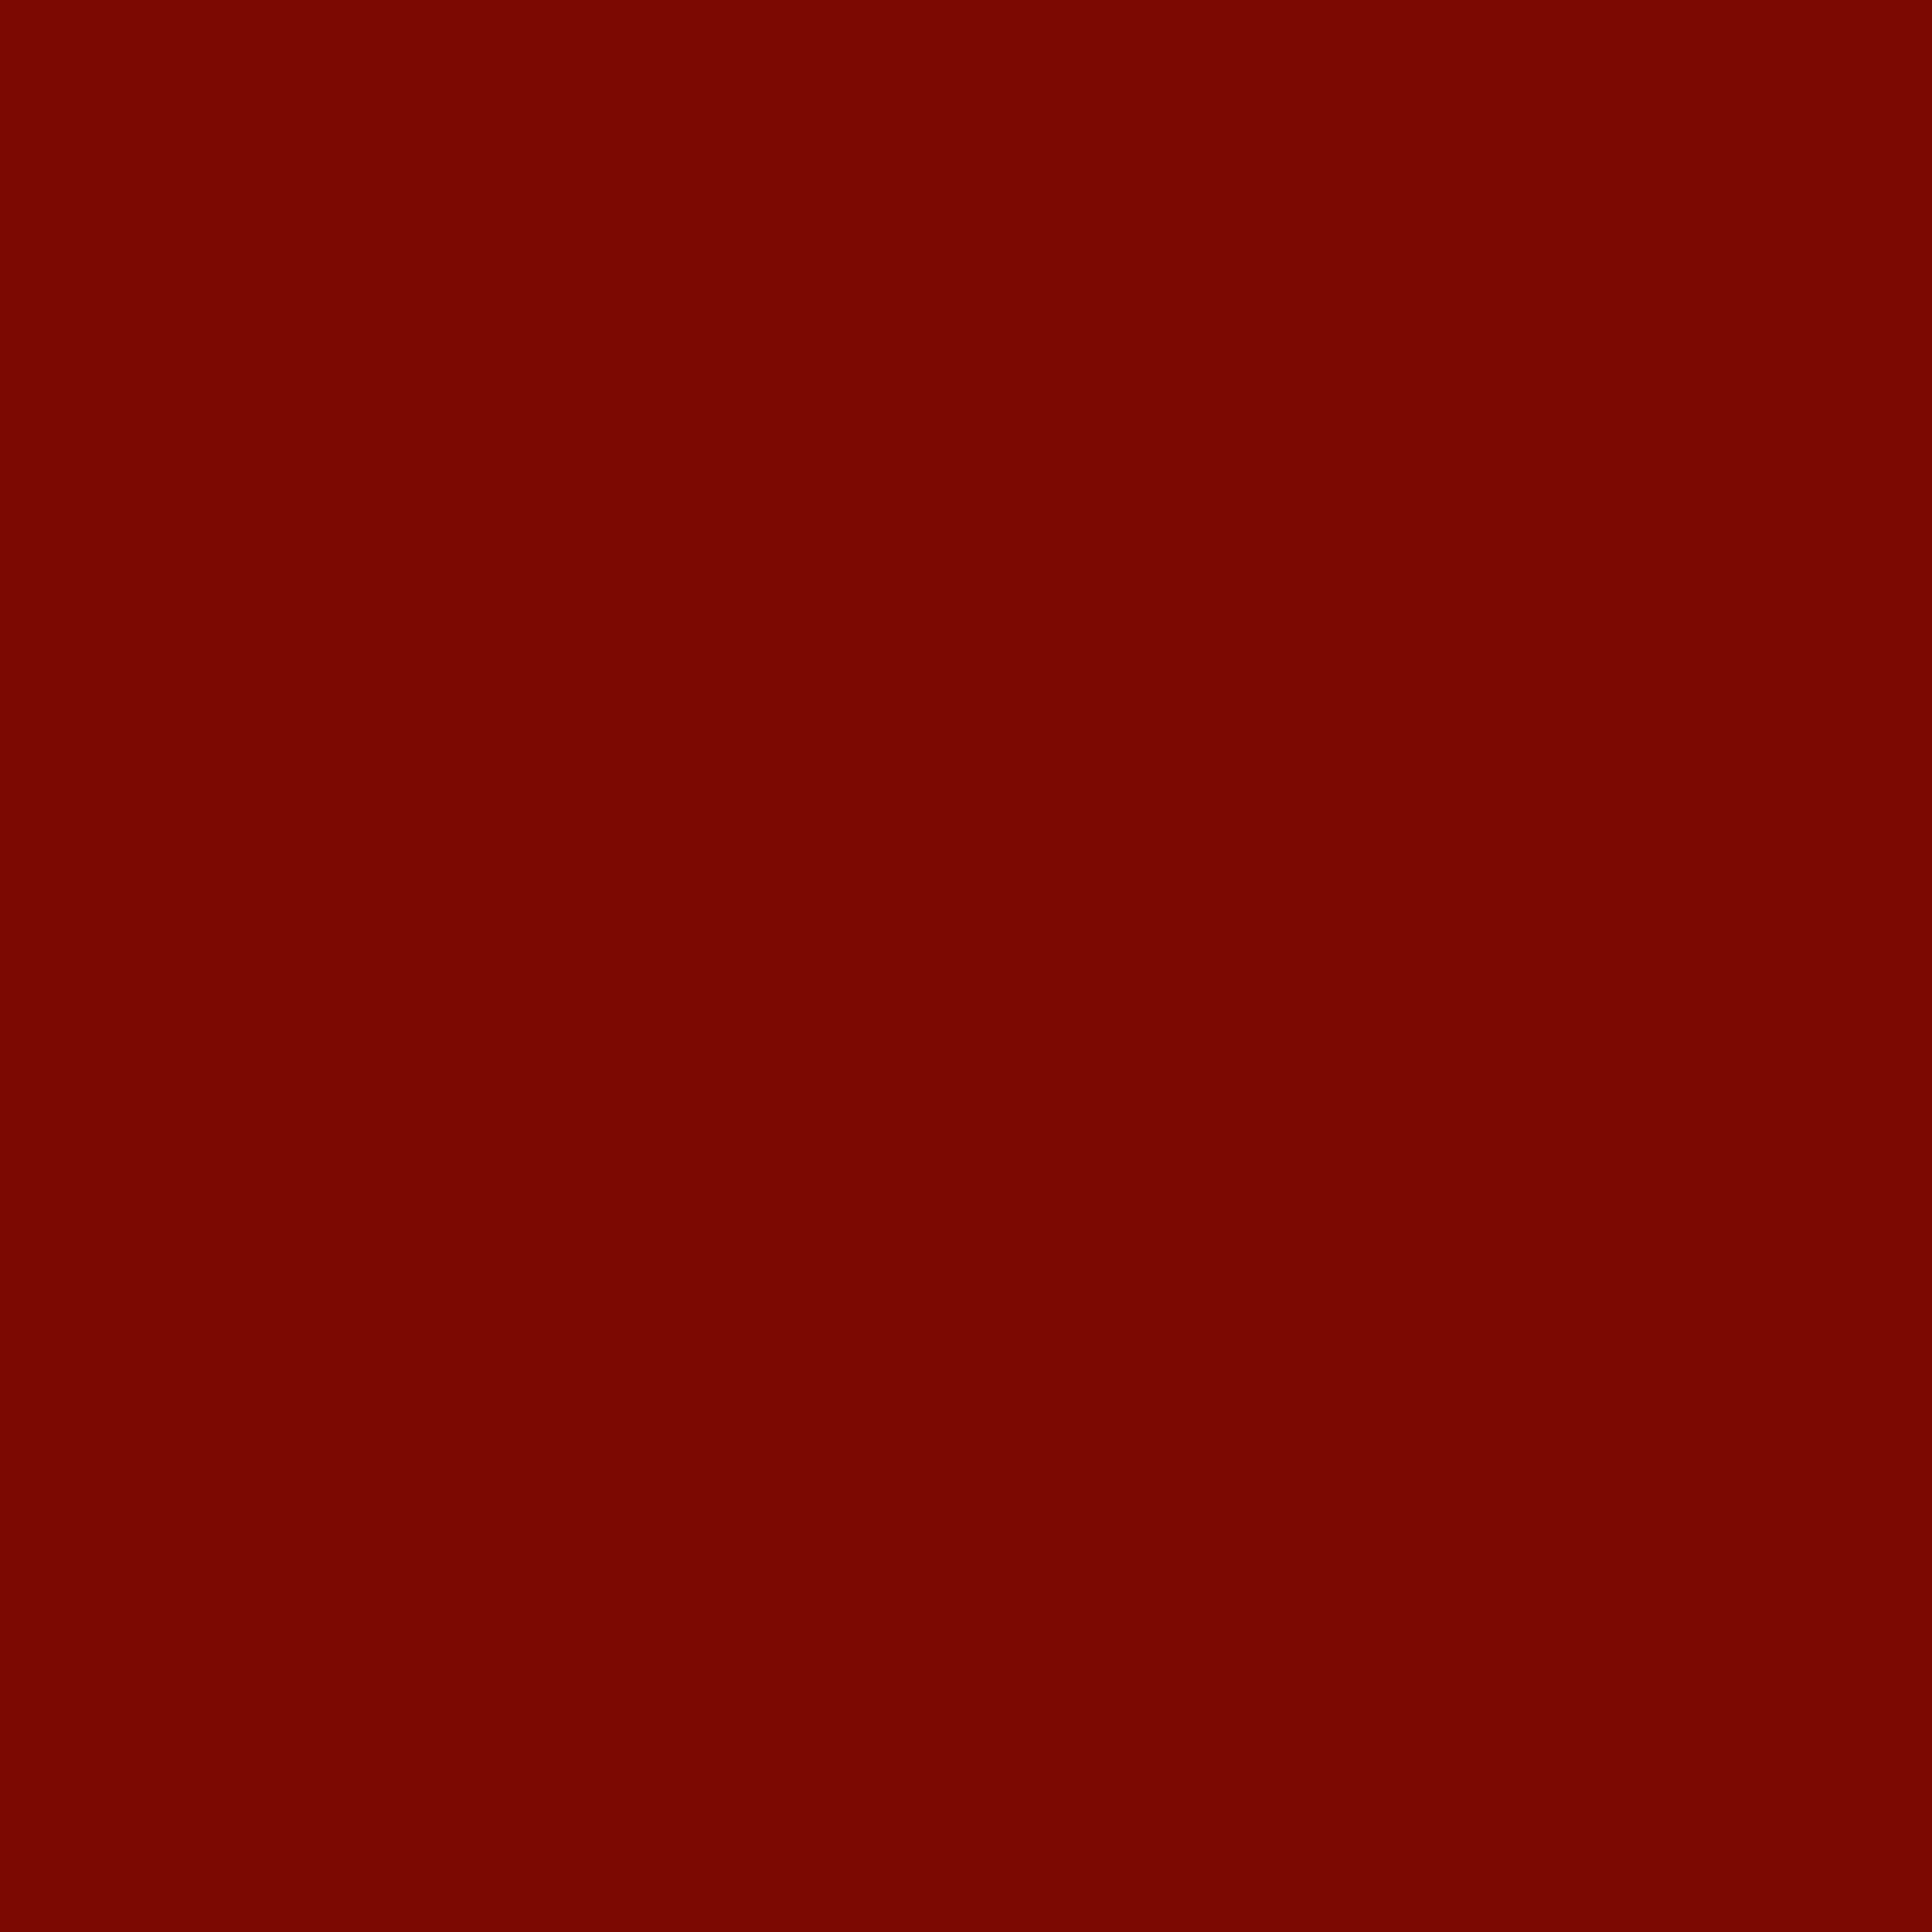 3600x3600 Barn Red Solid Color Background